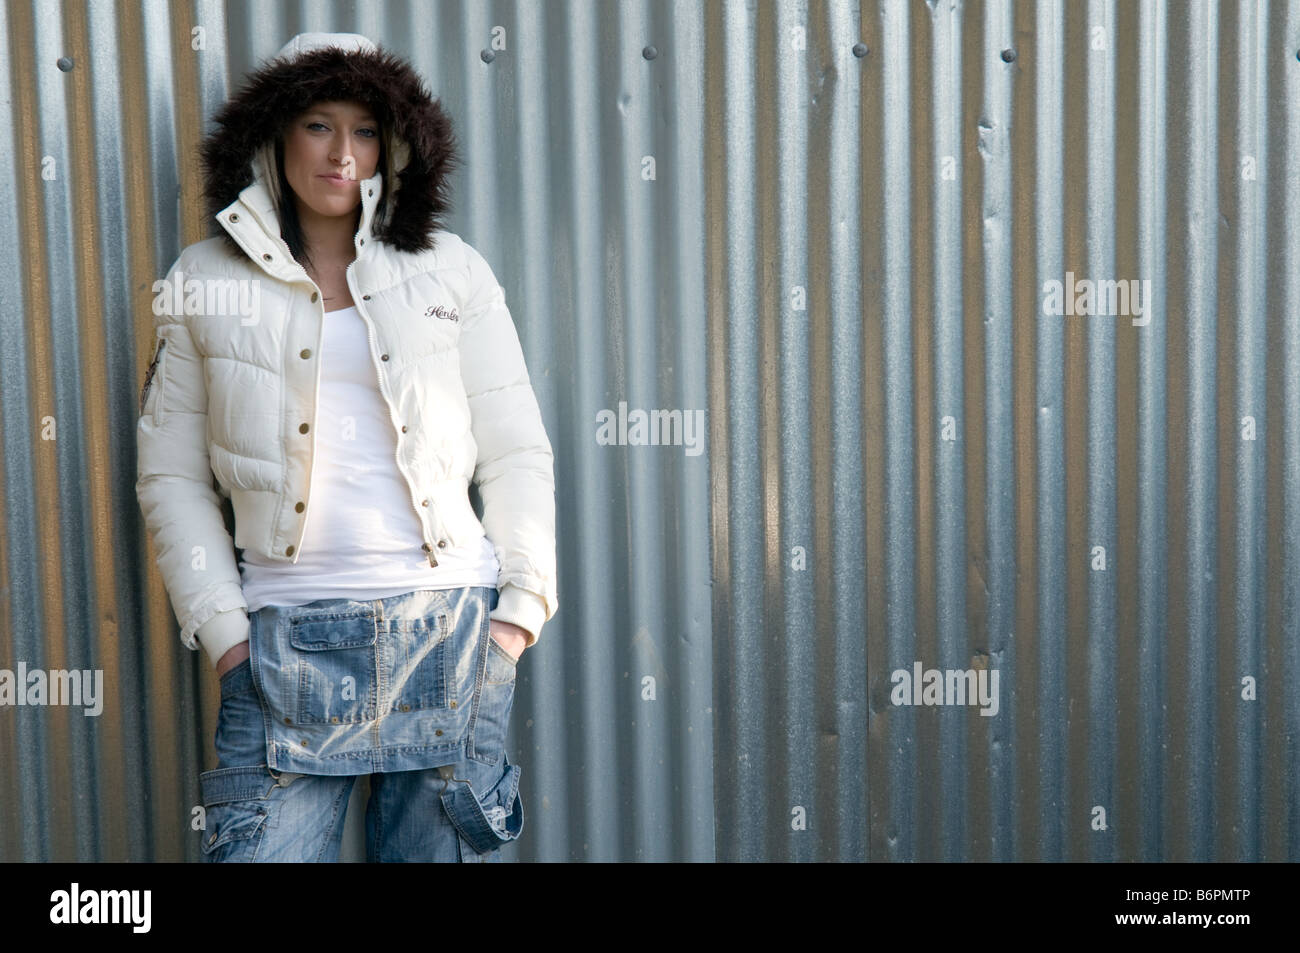 young smiling woman wearing a white fur trimmed jacket leaning on a corrugated iron metal wall - Stock Image